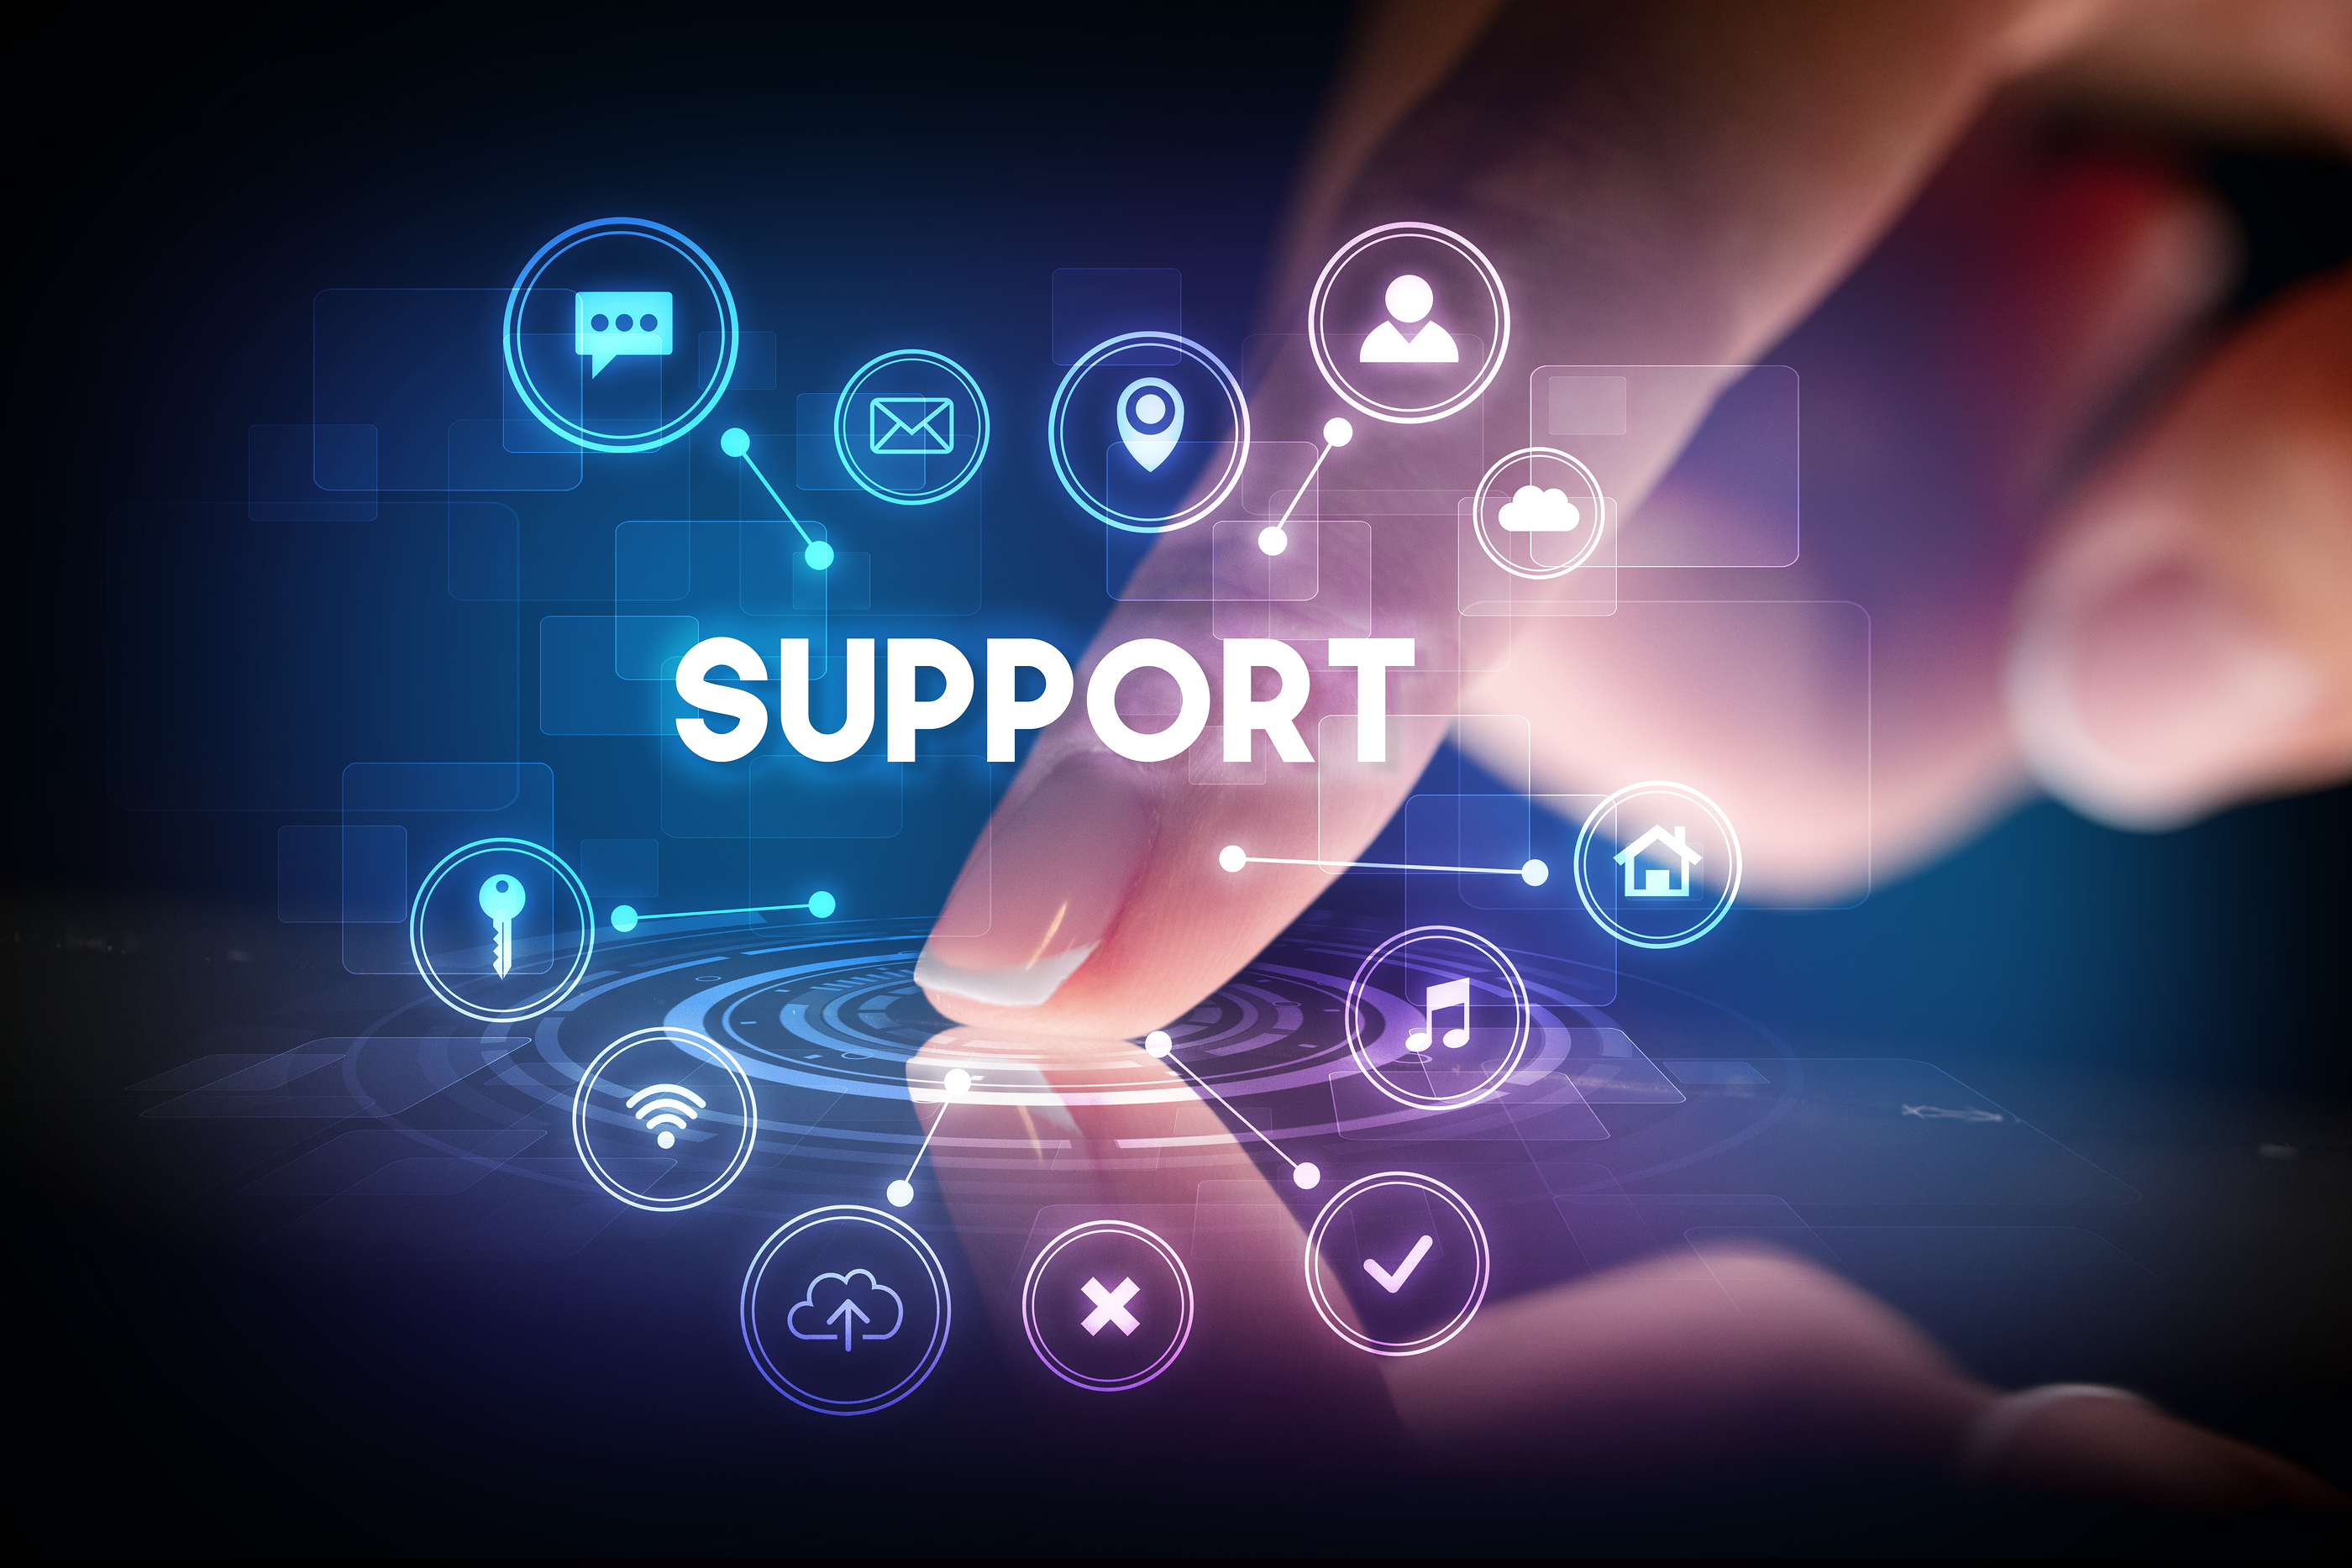 5 Big Advantages of Using Power Virtual Agents to Boost Customer Support